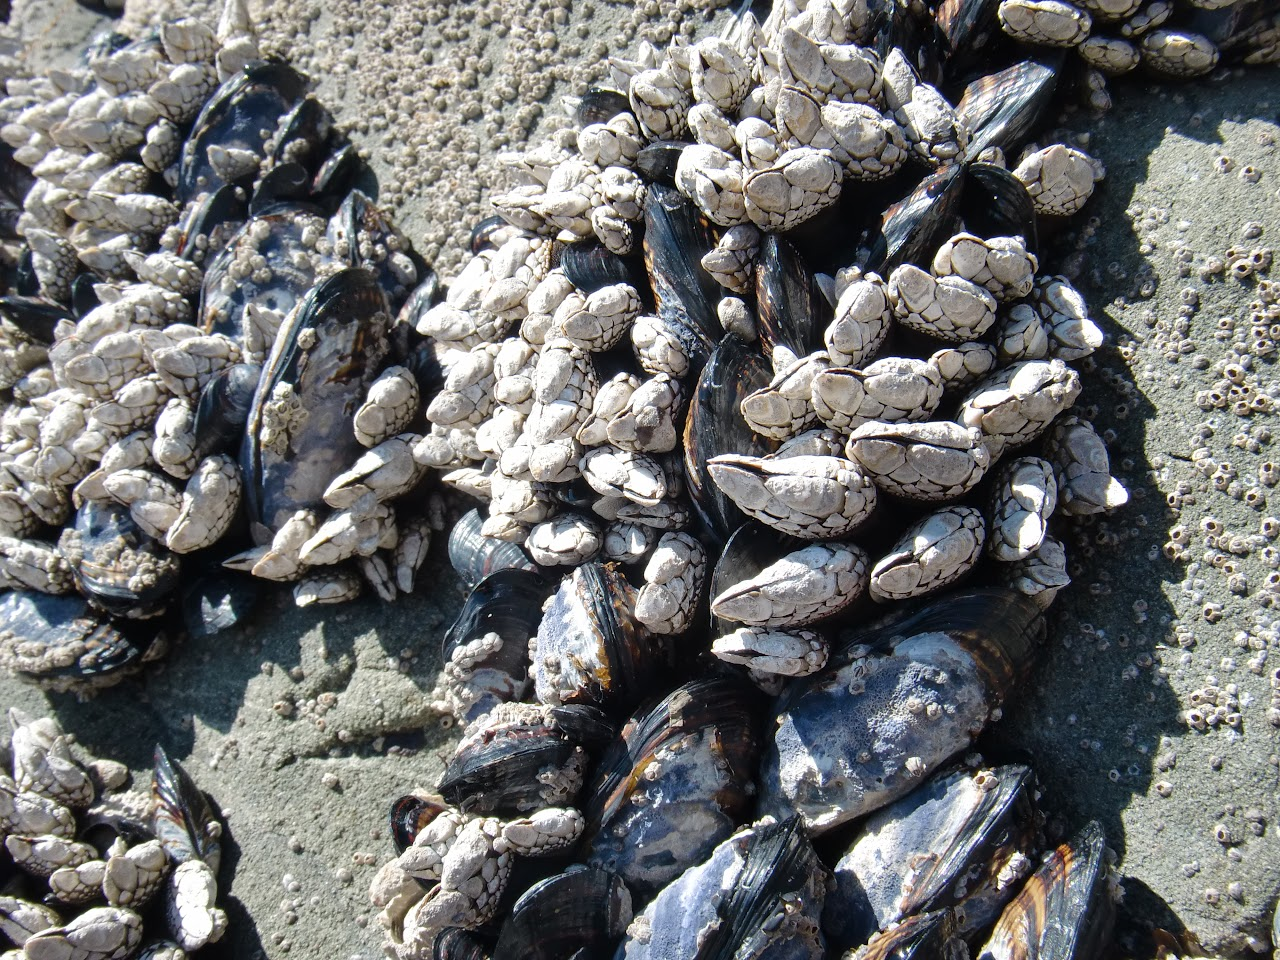 Gooseneck Barnacles and muscles